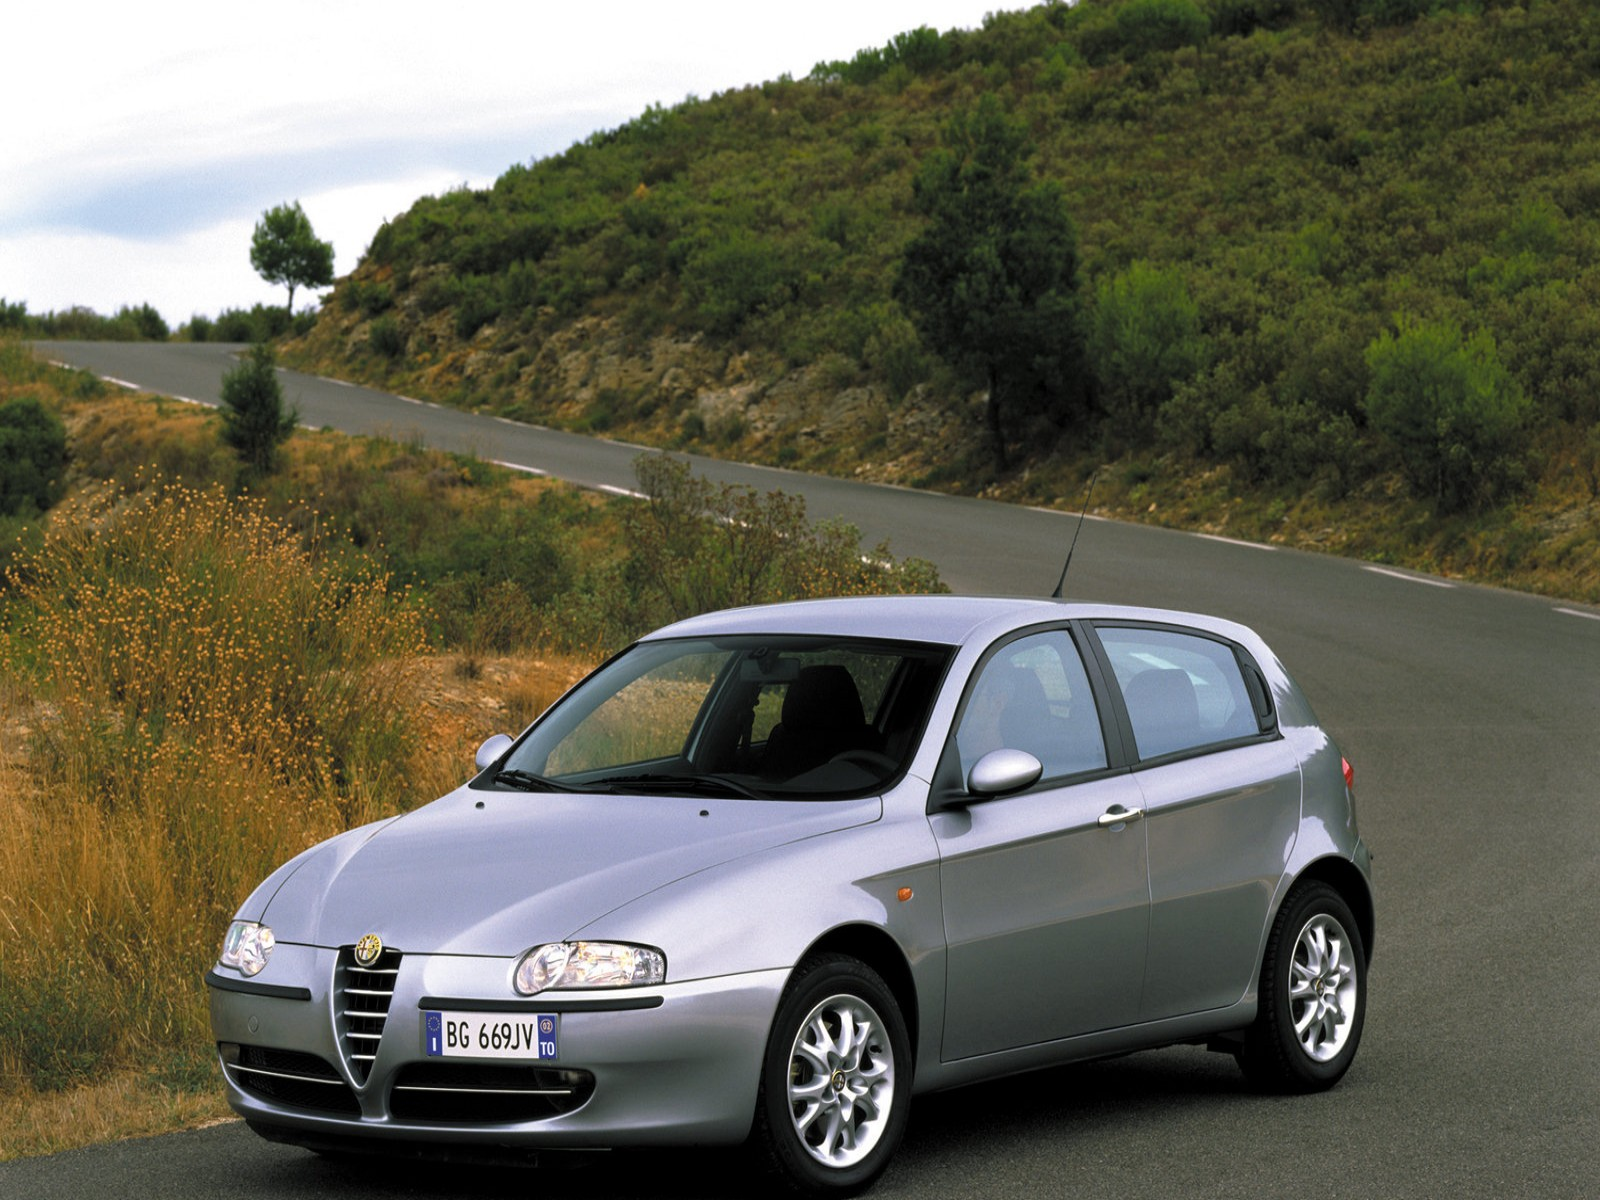 car photo wallpaper 2002 alfa romeo 147 jtd 16v. Black Bedroom Furniture Sets. Home Design Ideas